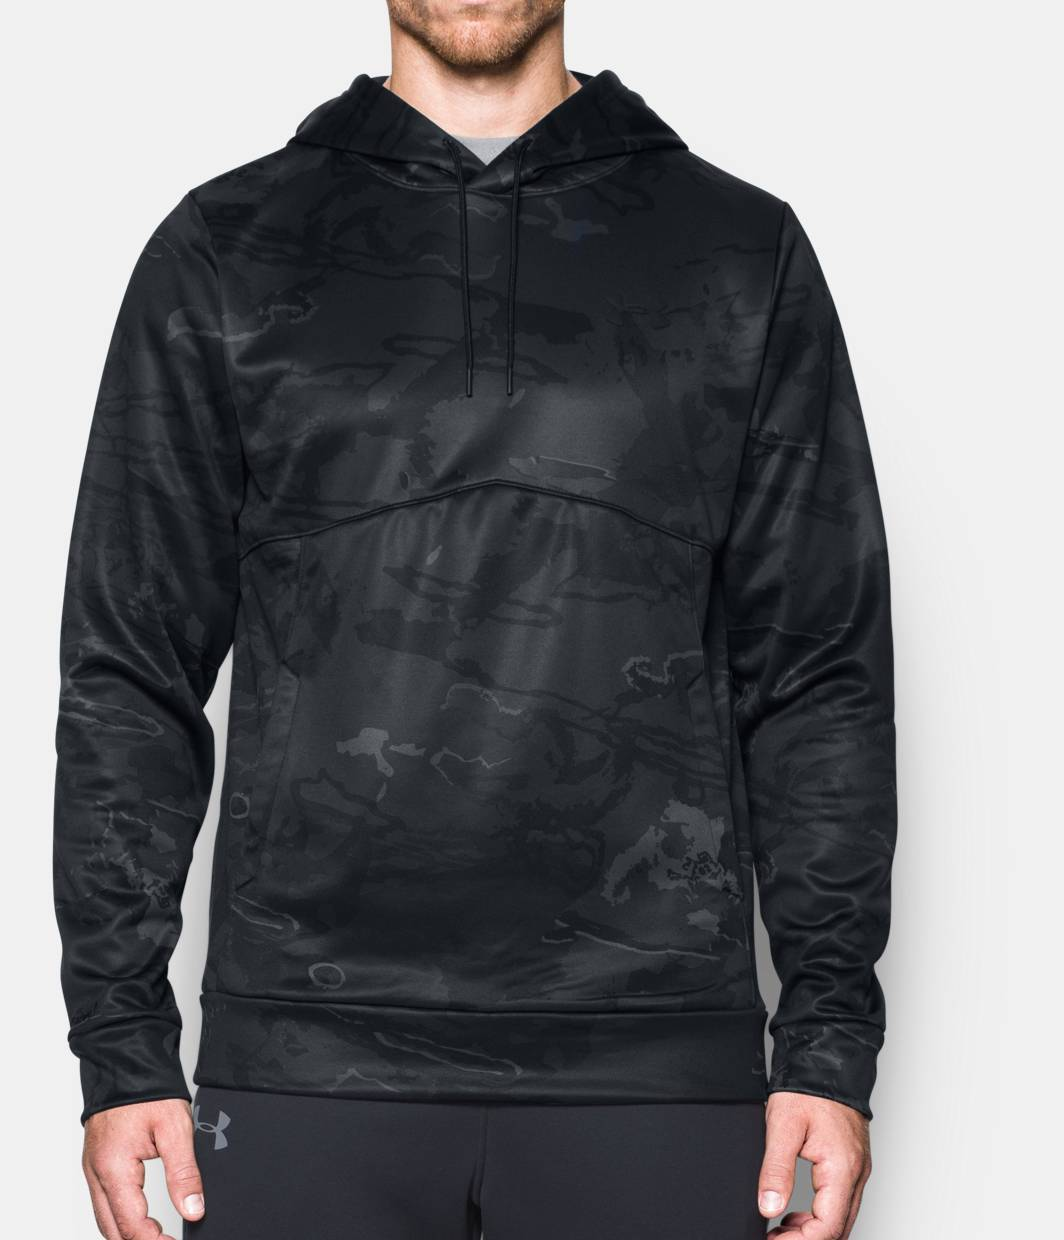 Men's Hoodies & Sweatshirts | Under Armour US